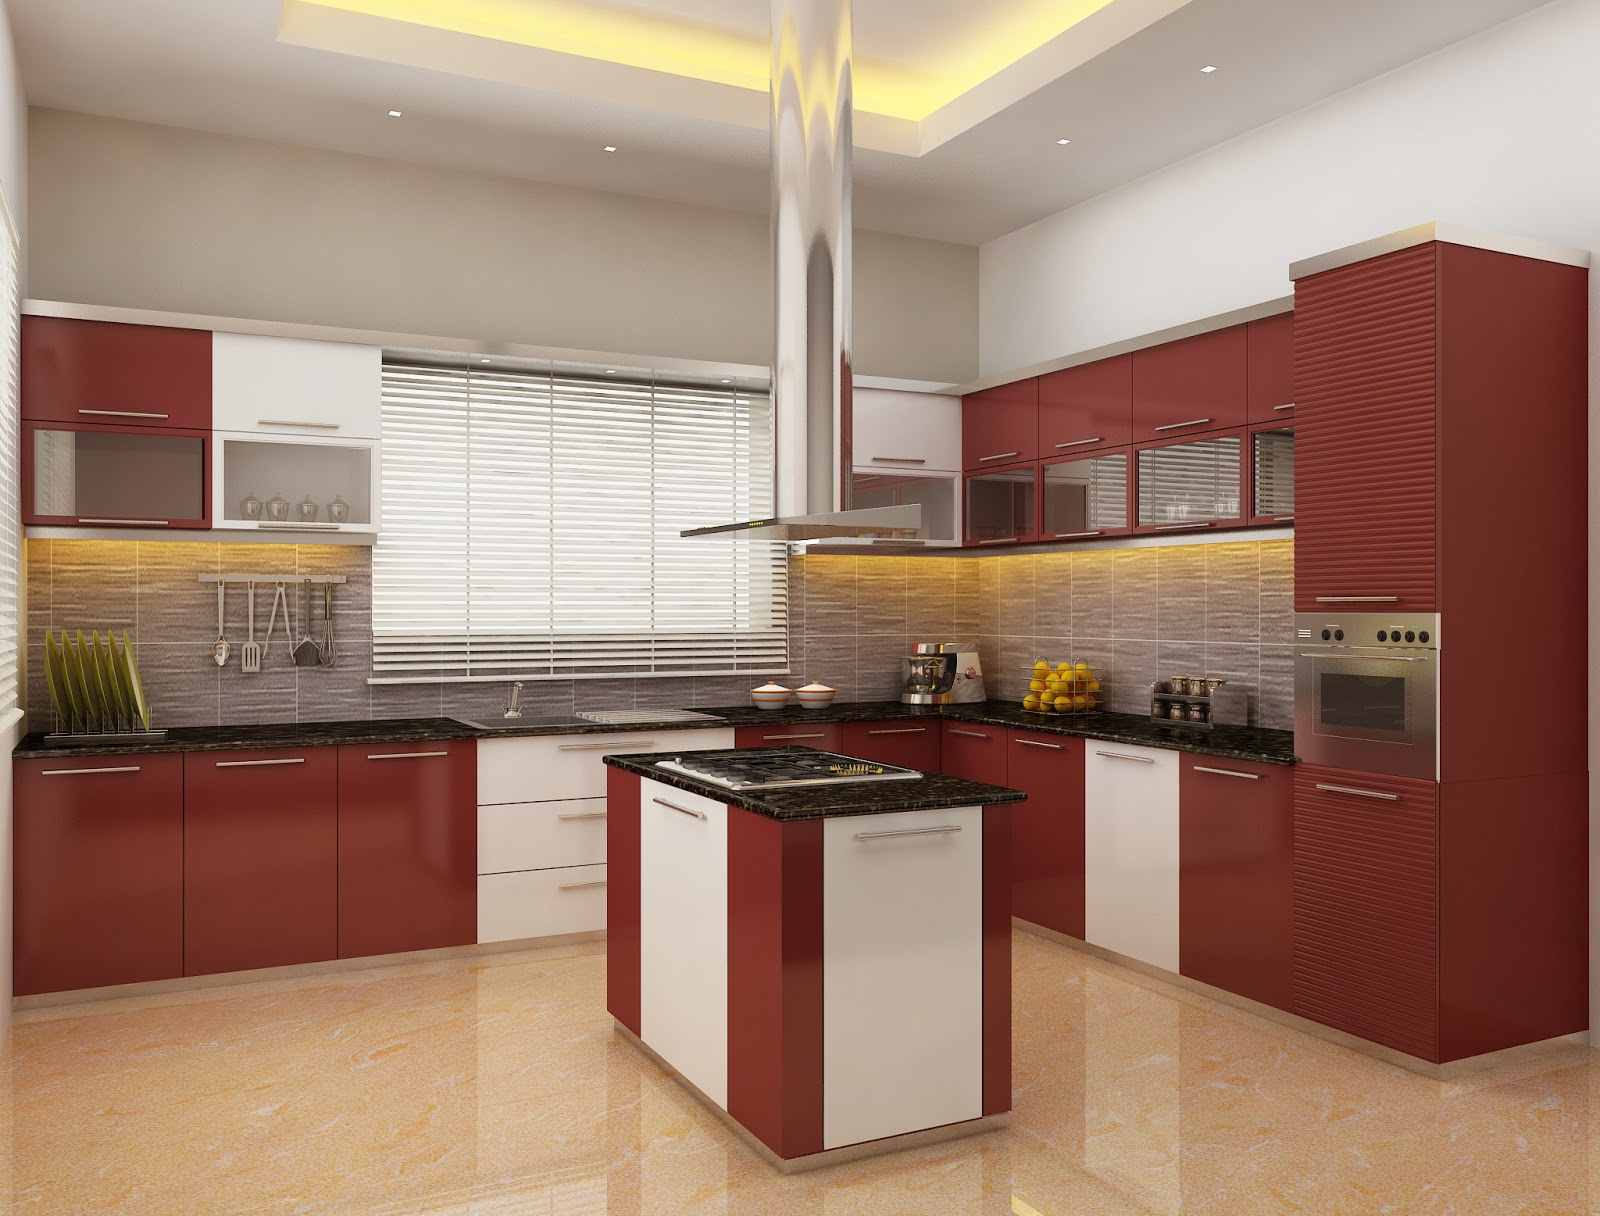 Modern kitchen in kerala style joy studio design gallery for Kitchen design kerala